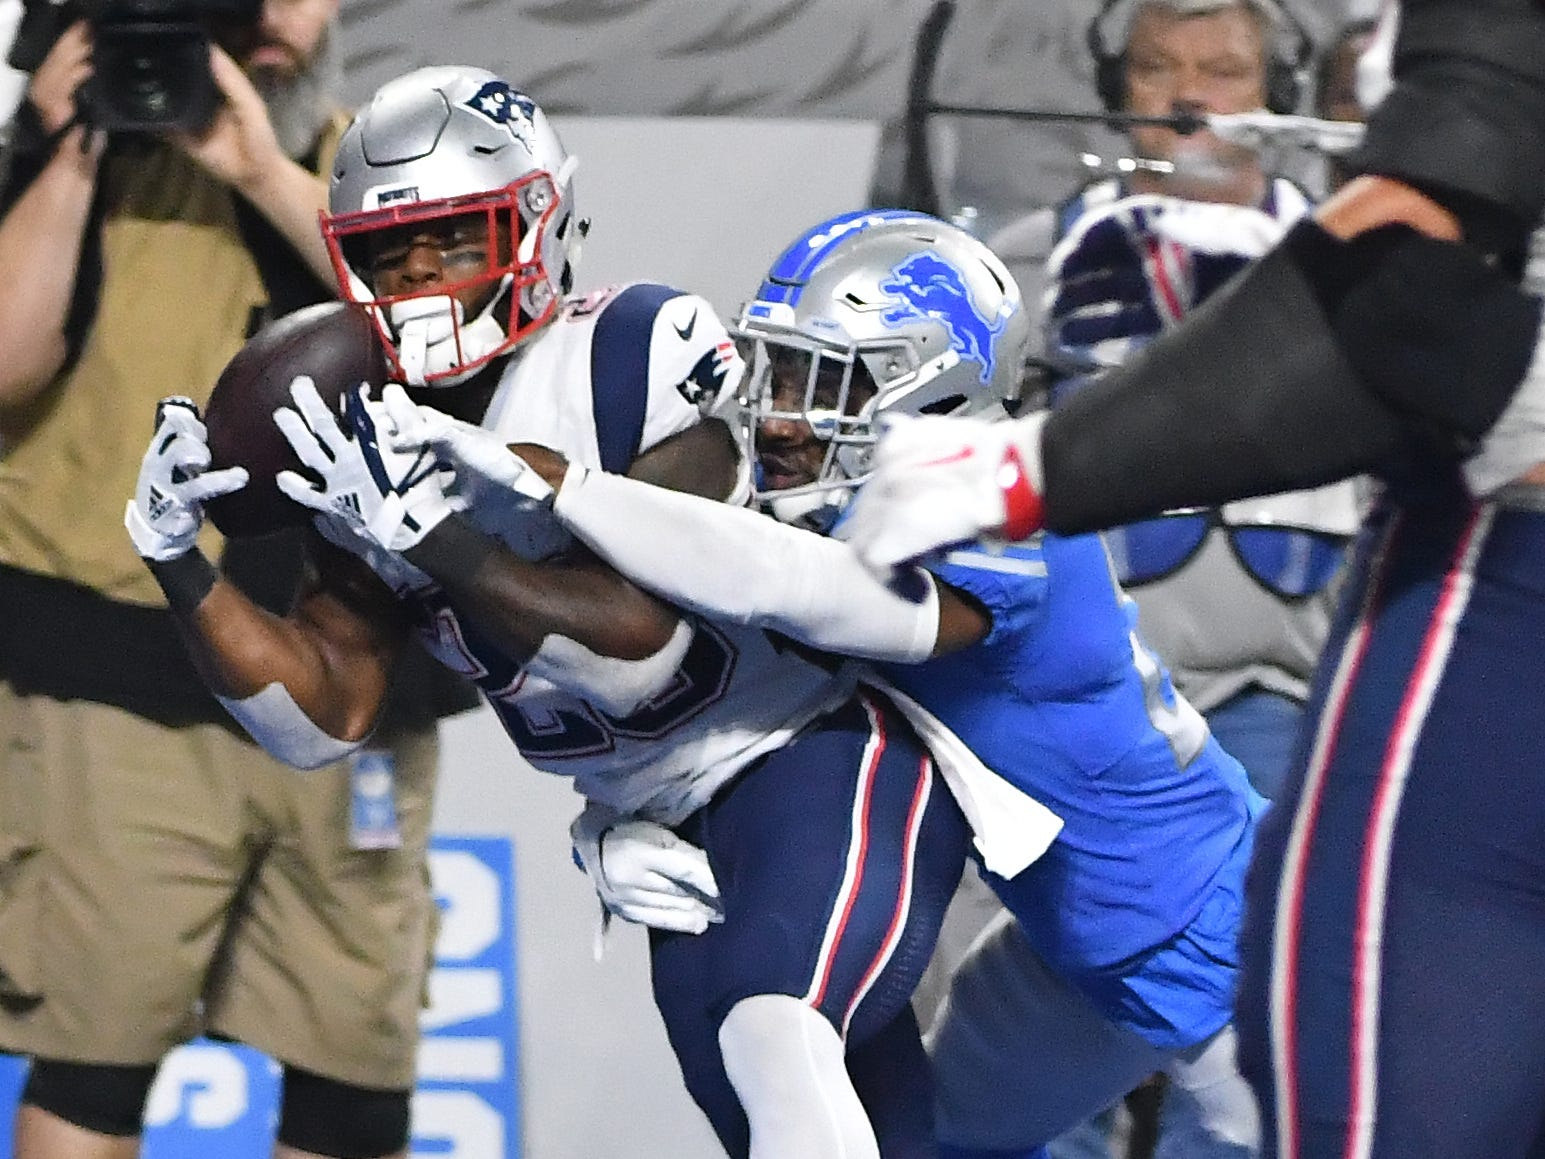 Patriots running back James White pulls in a touchdown reception past Lions' Quandre Diggs in the 3rd quarter.